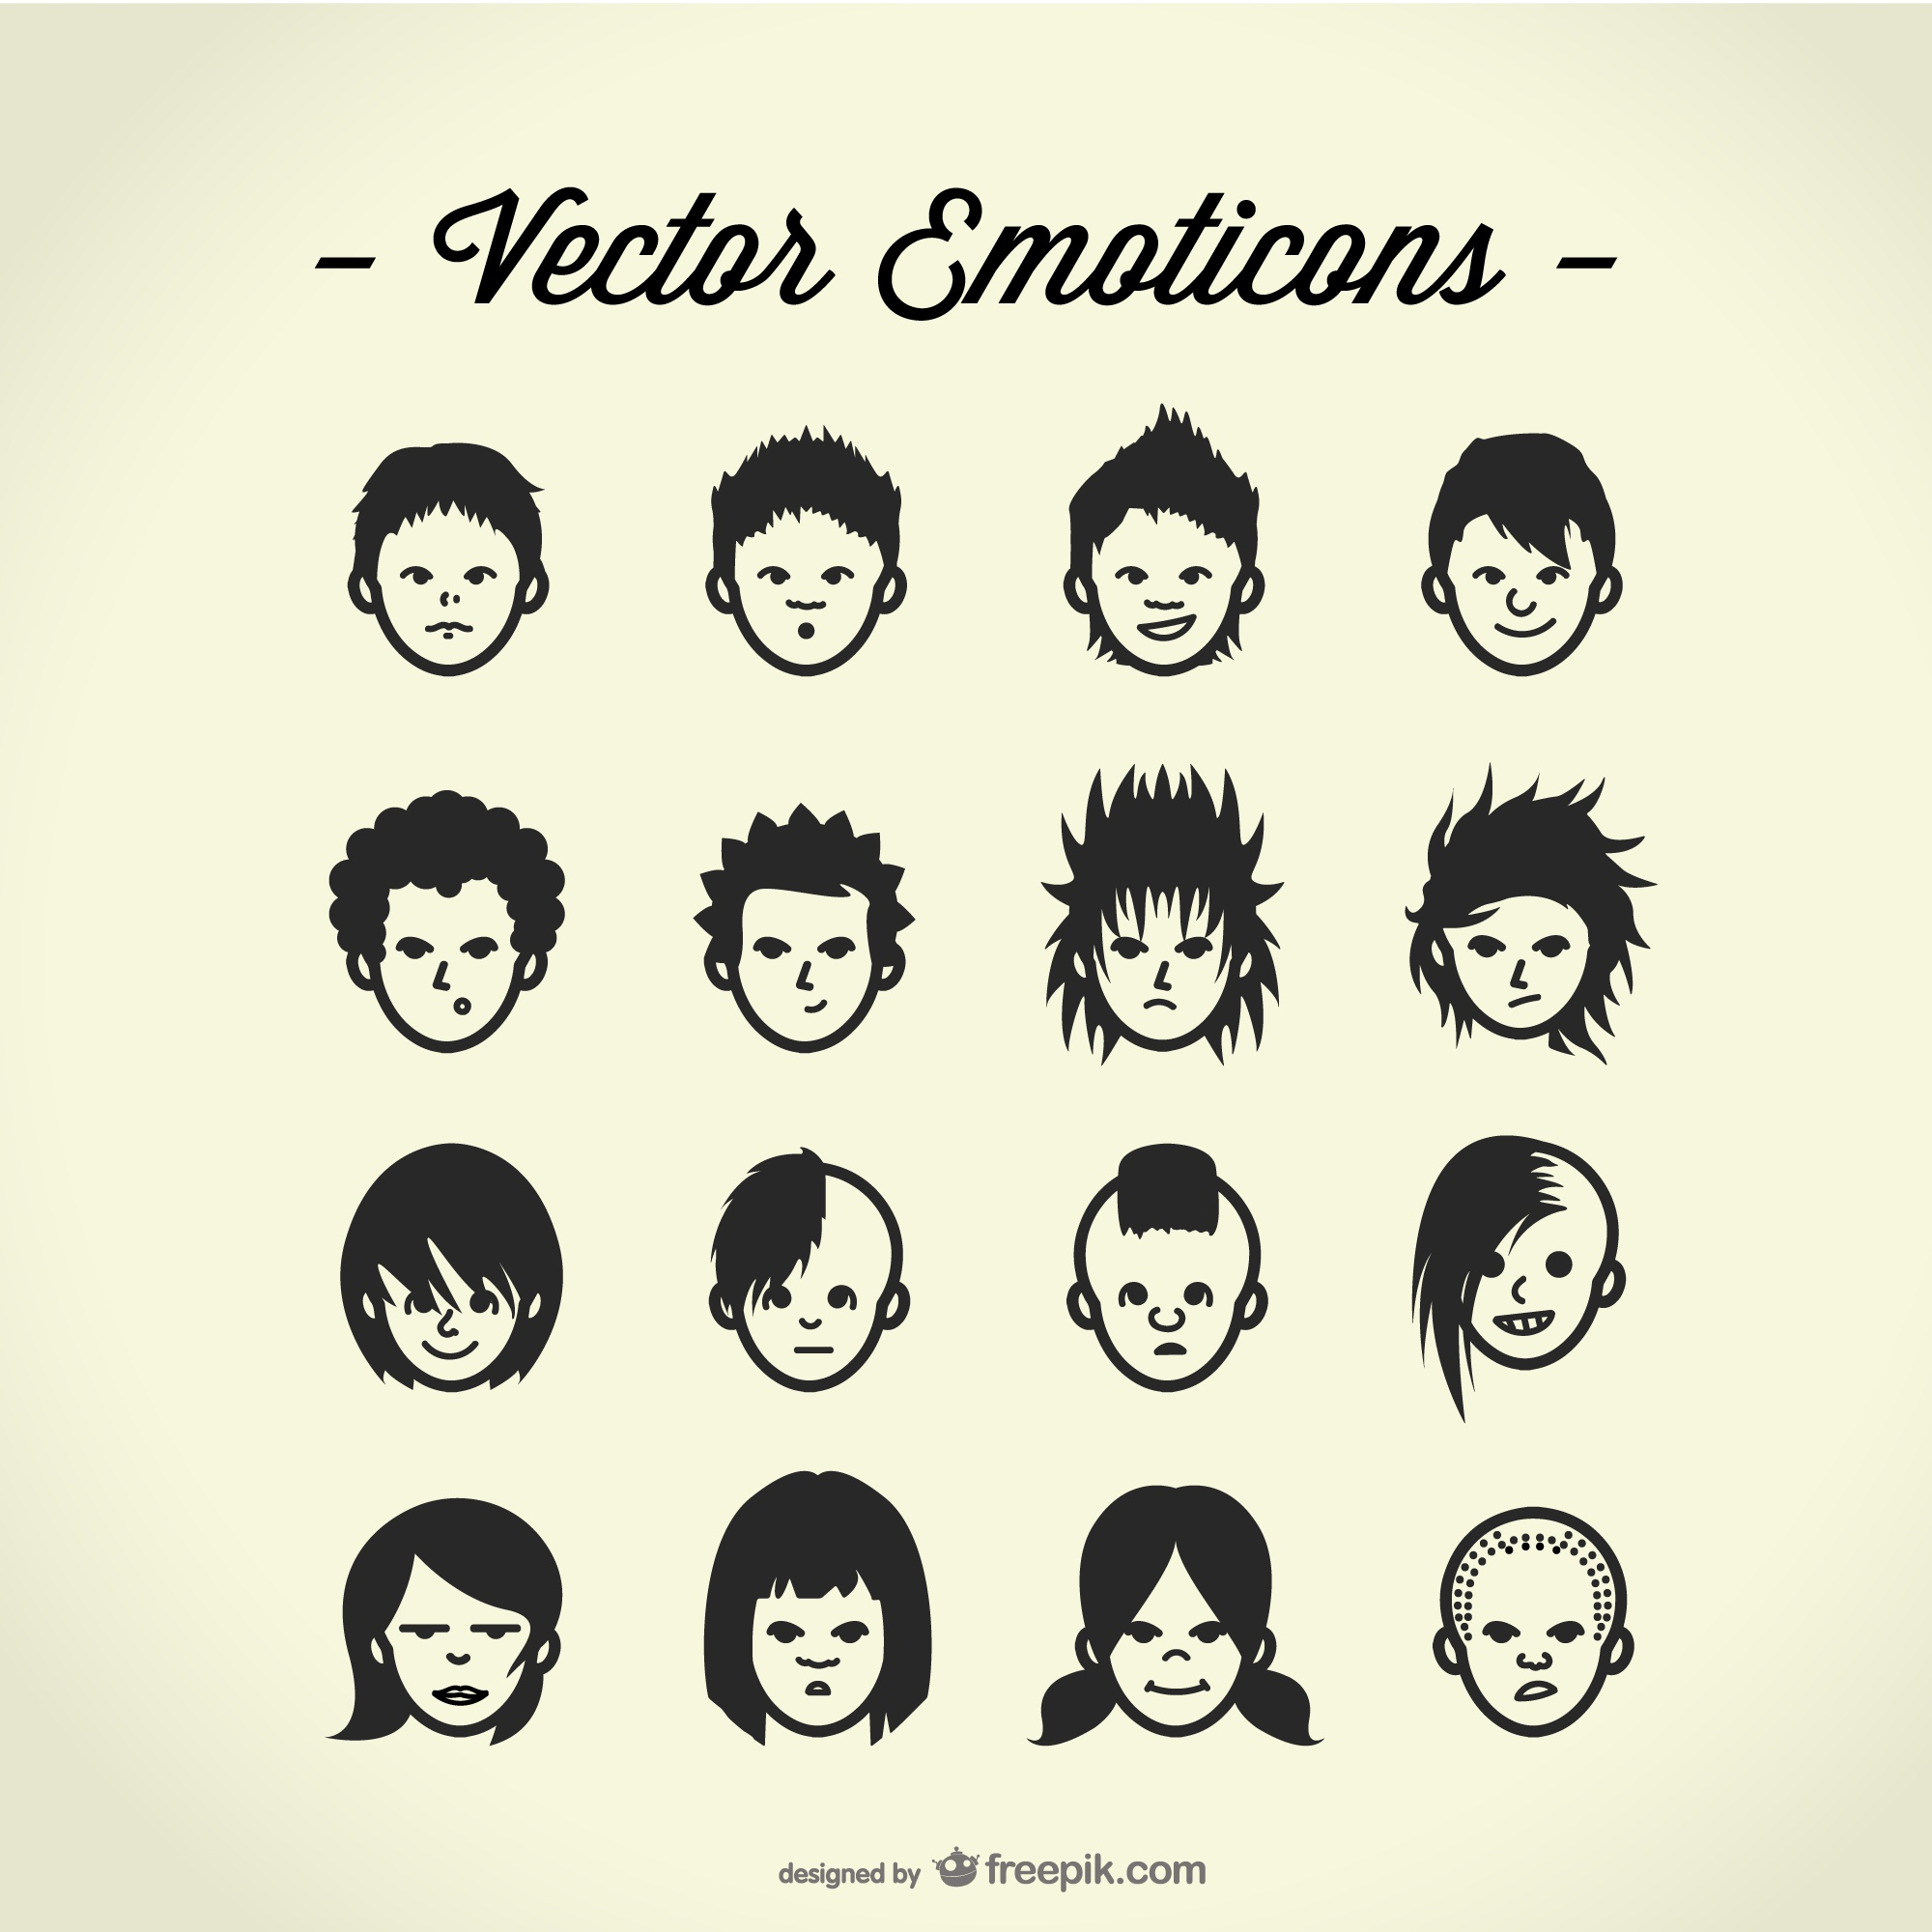 Free vector avatars set